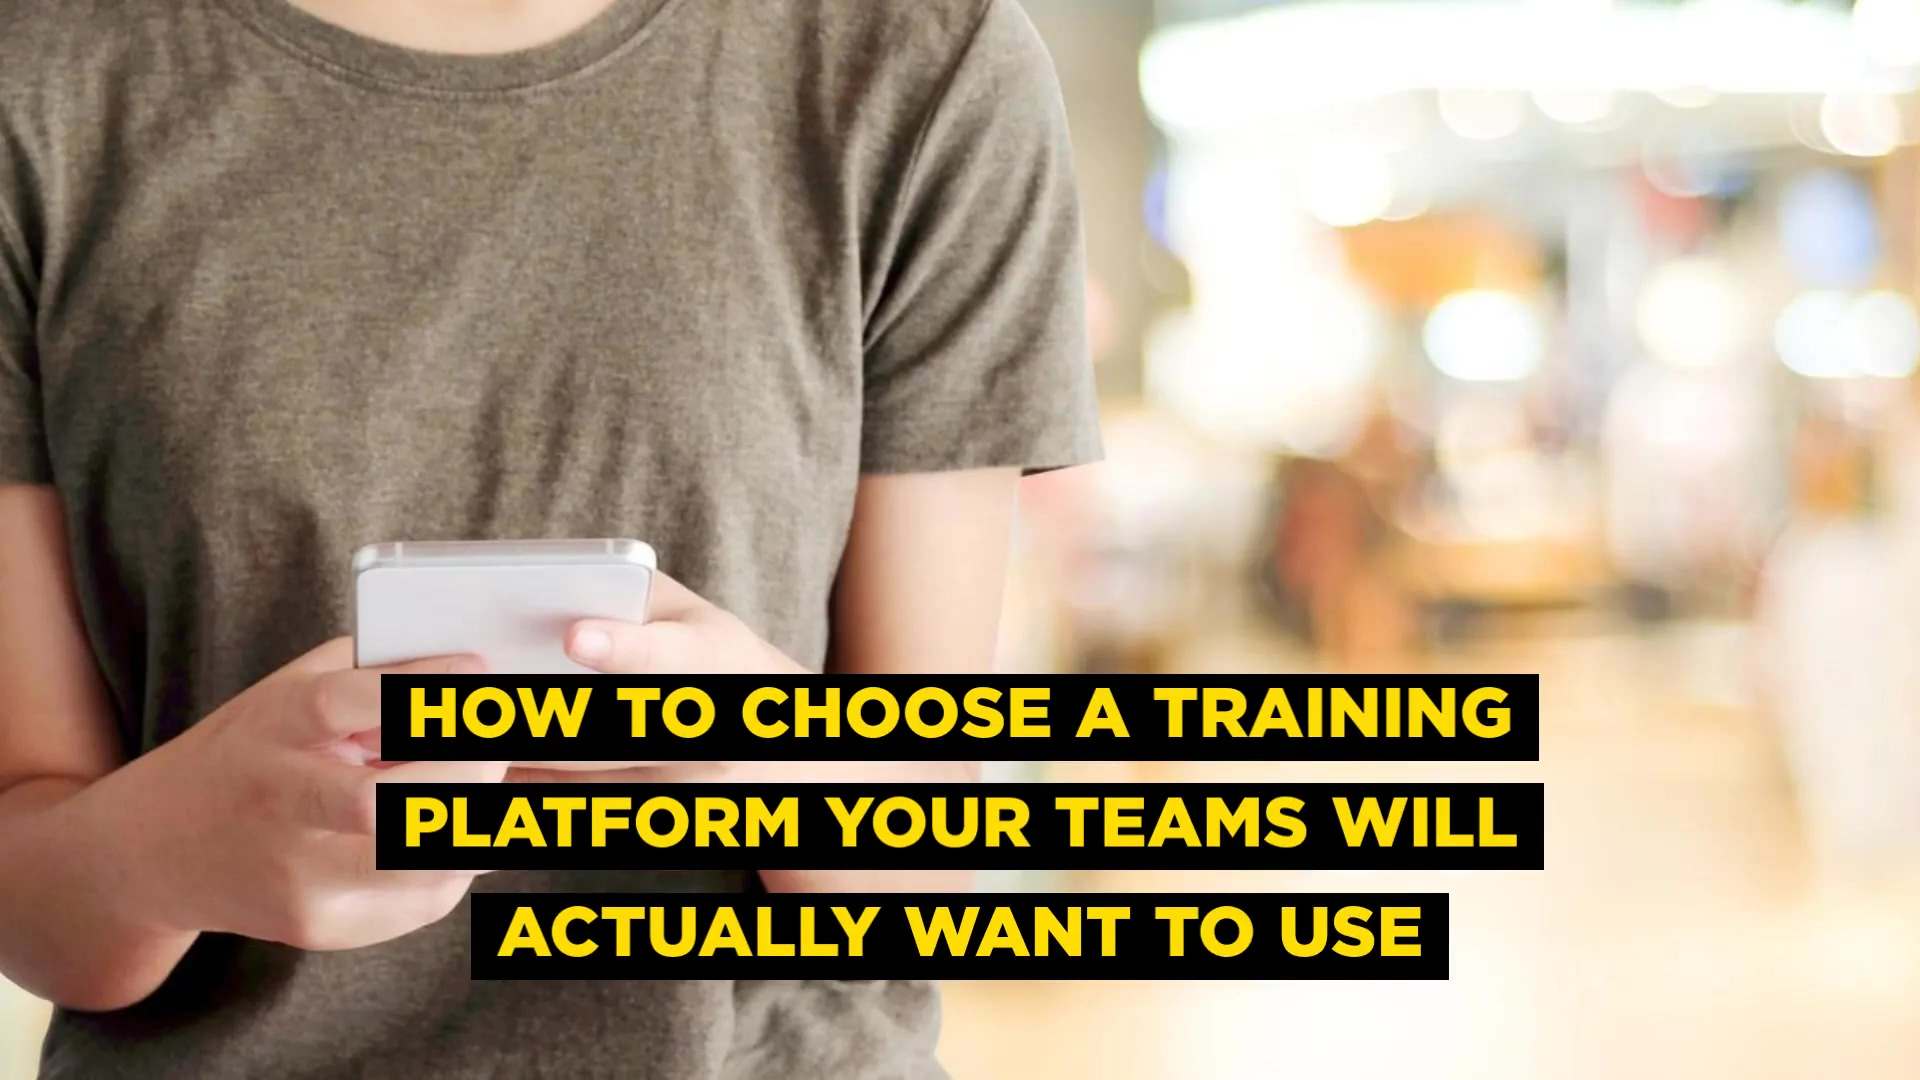 HOW_TO_CHOOSE_A_TRAINING_PLATFORM_YOUR_T (1)